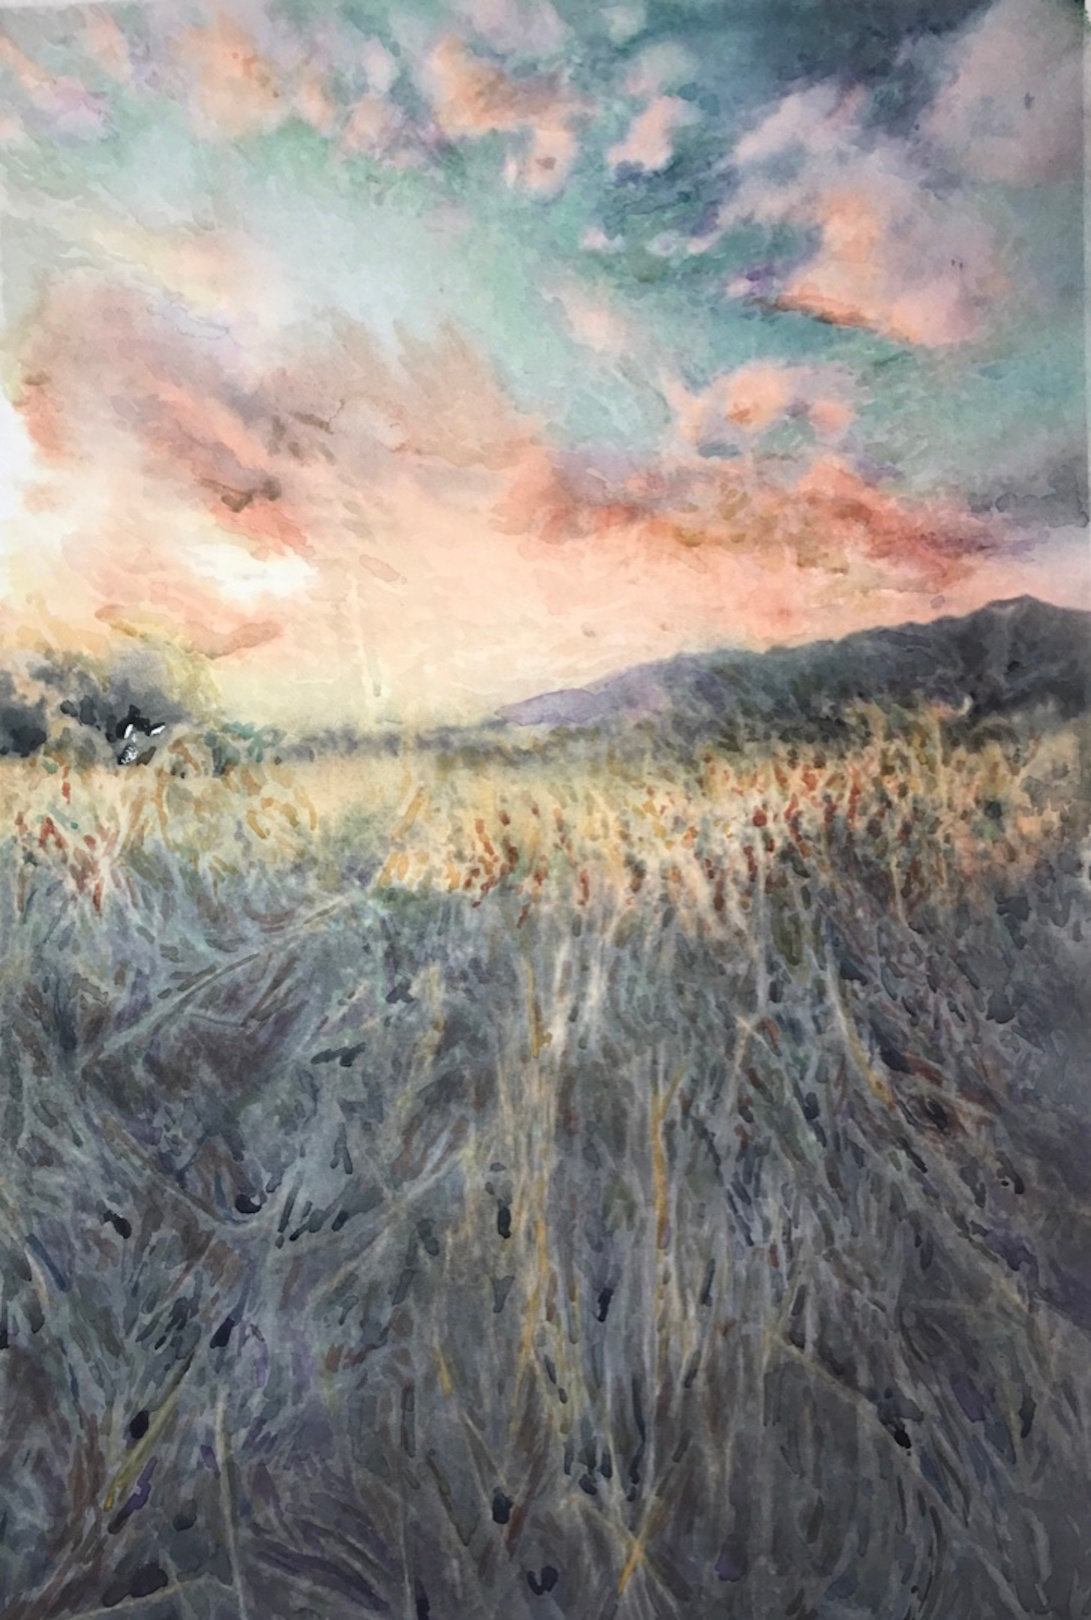 knee height grass_Edna Carla Stradioto_watercolor in hahnemuhle anniversary edition 425gsm 36x48cm_2018